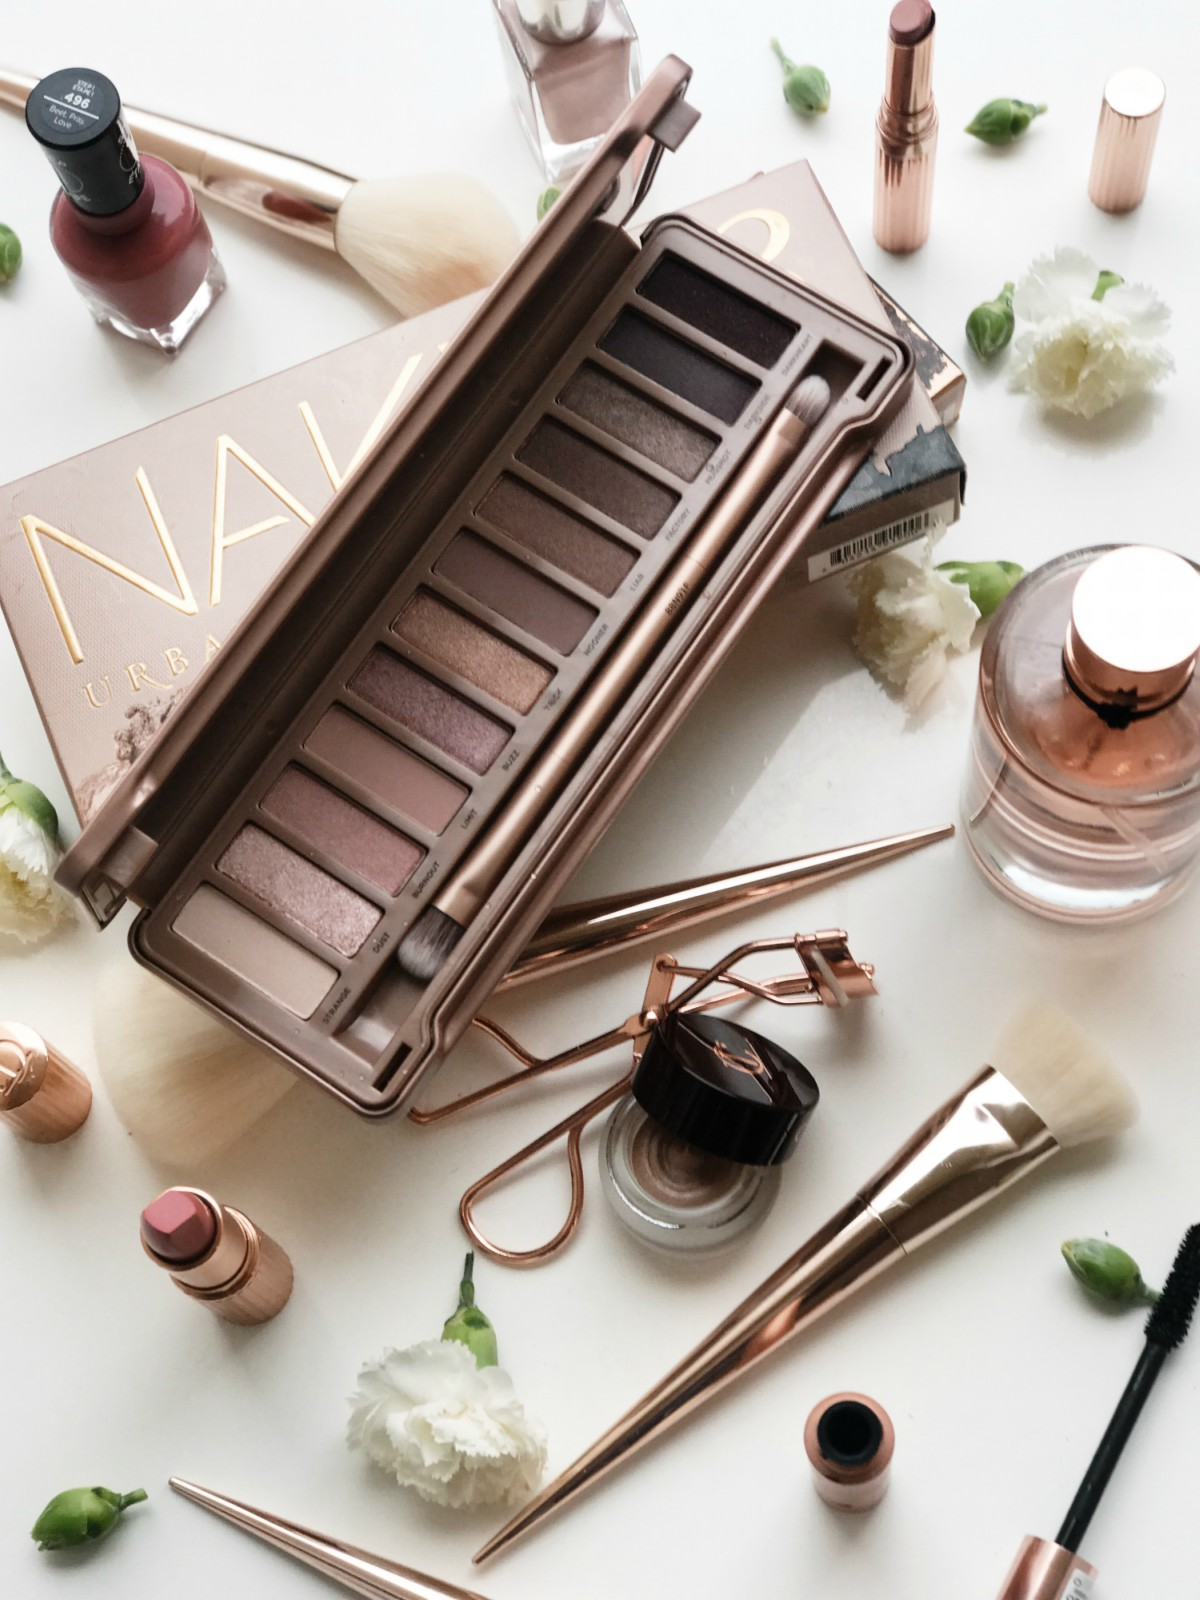 30% off Urban Decay Palettes